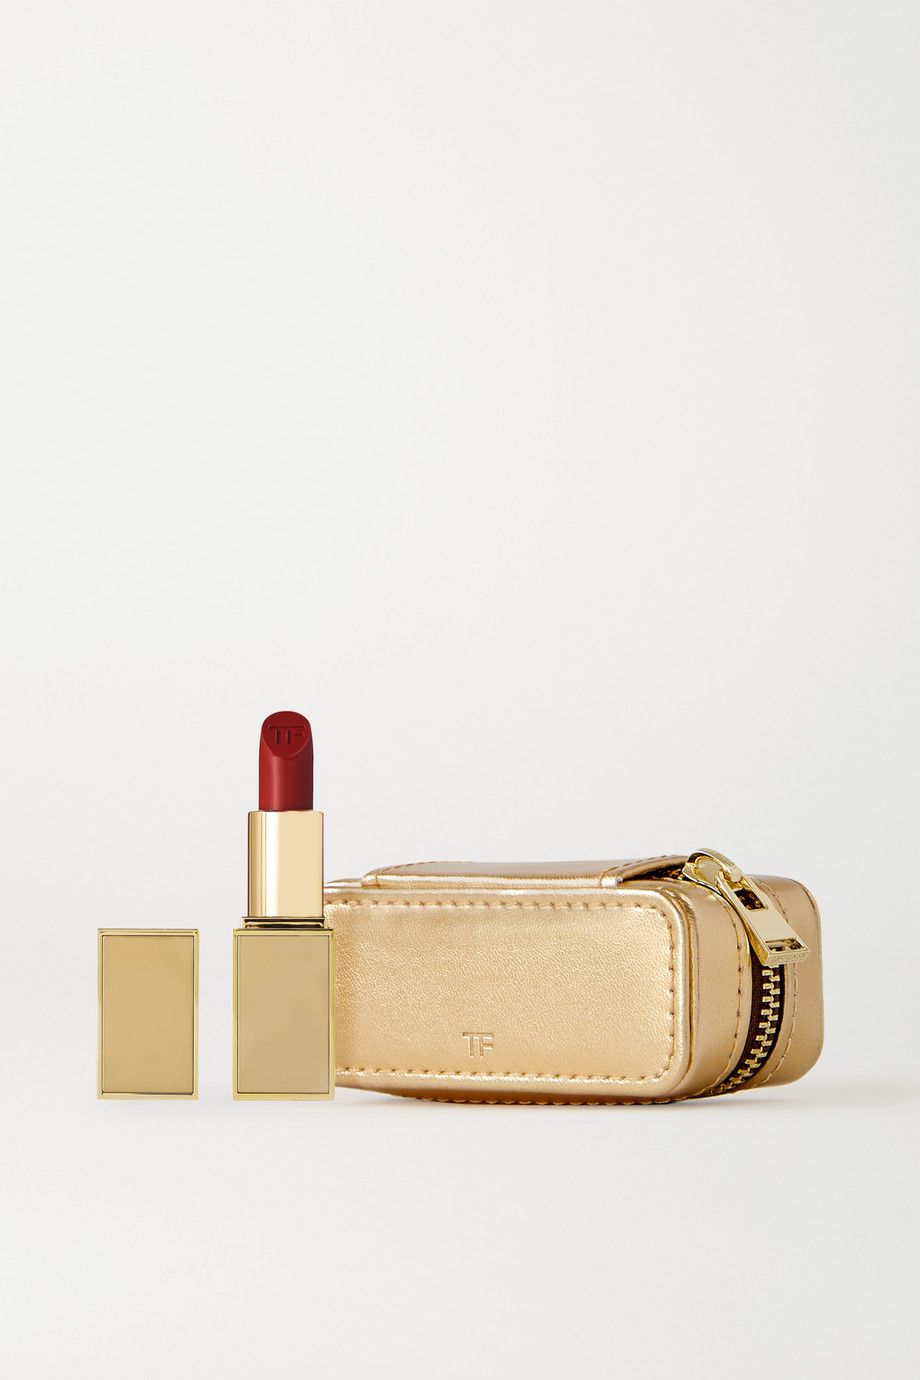 TOM FORD BEAUTY Lip Color and Metallic Leather Case Set - Wild Ginger